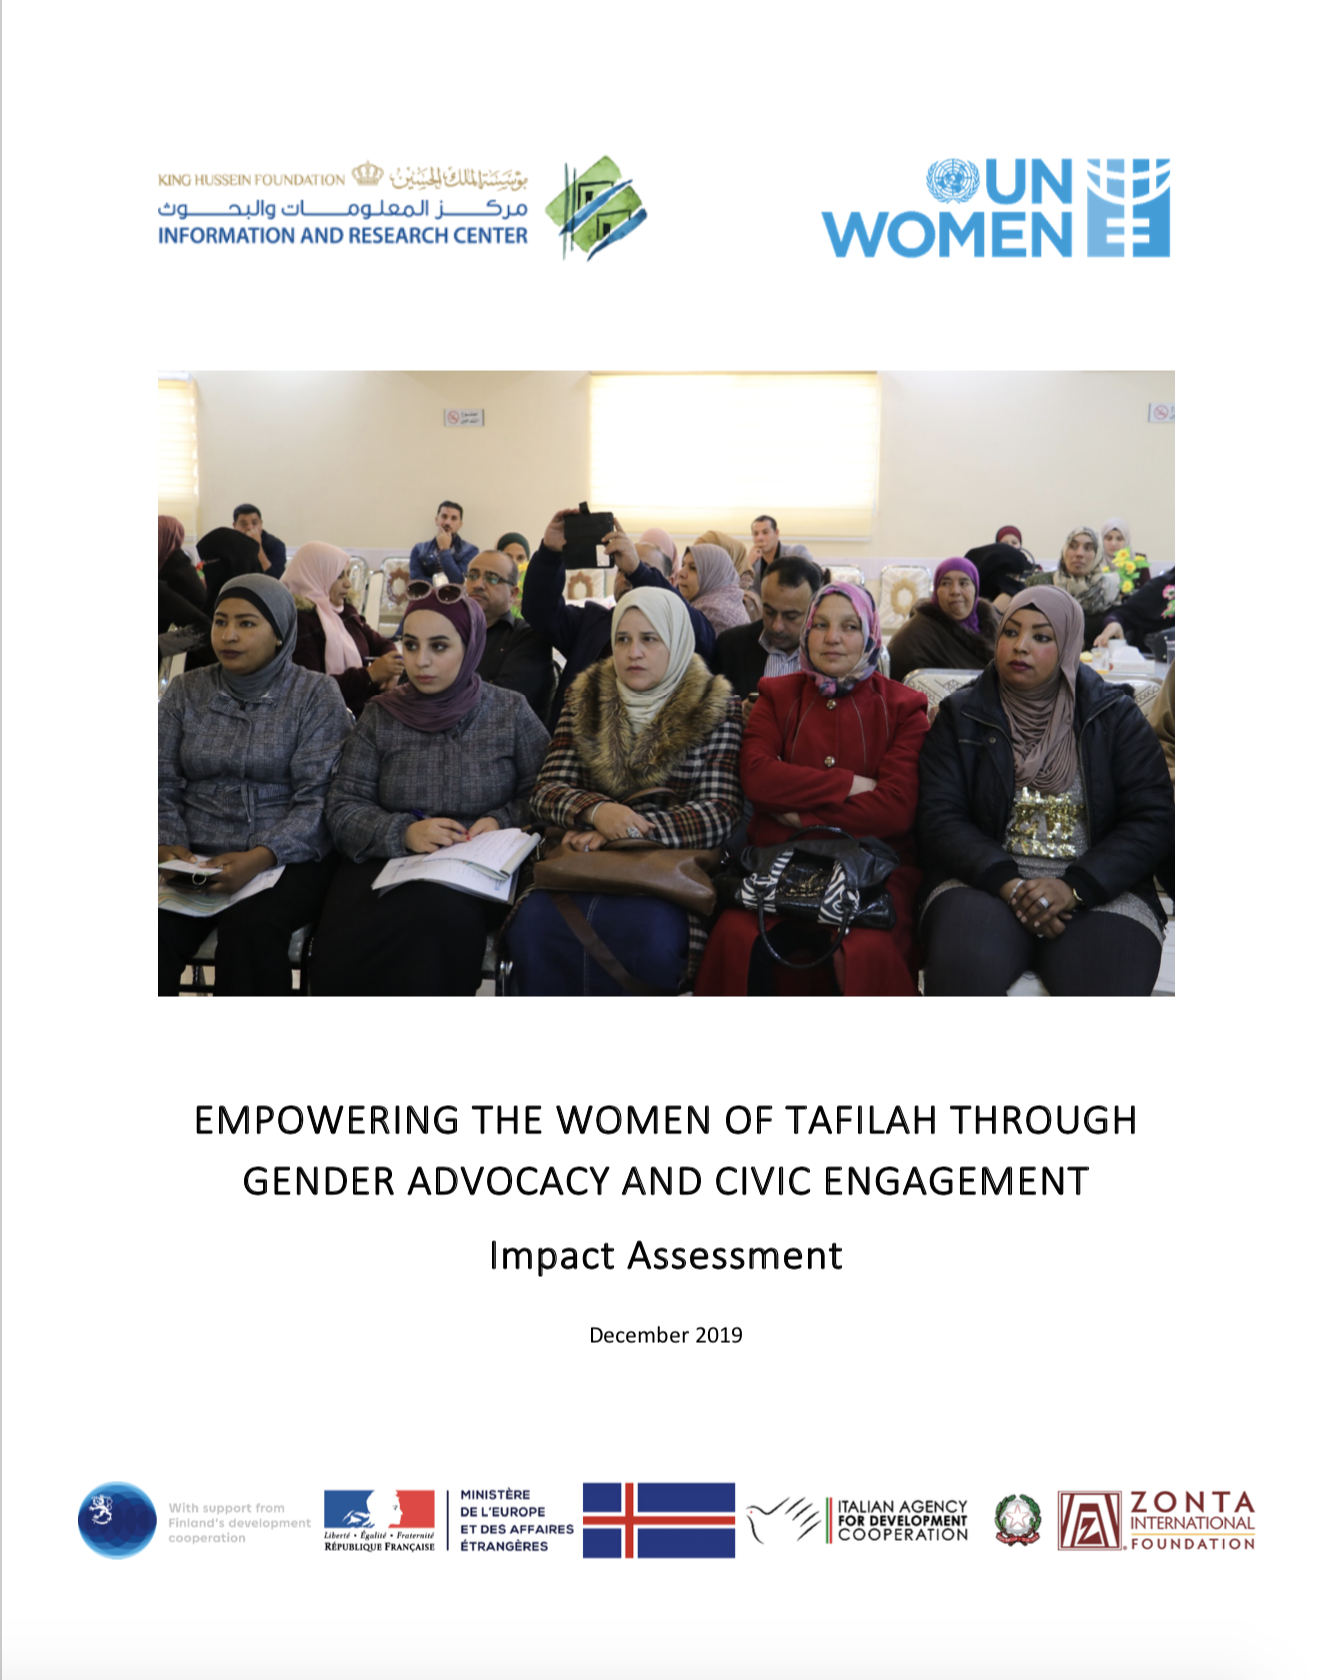 Empowering the women of Tafilah through gender advocacy and civic engagement